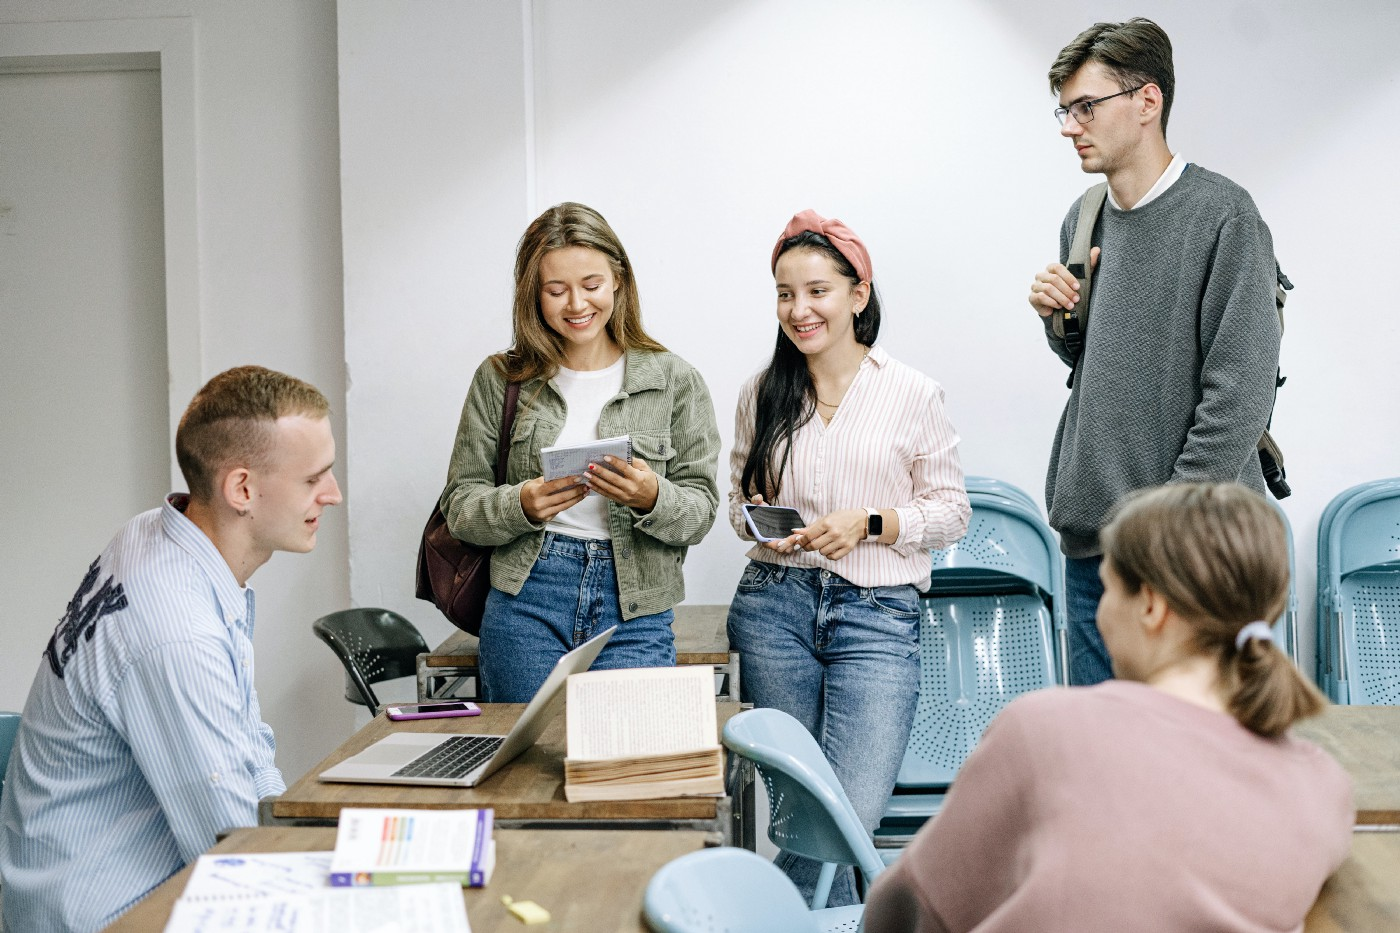 Group discussion questions for practicing idioms and expressions